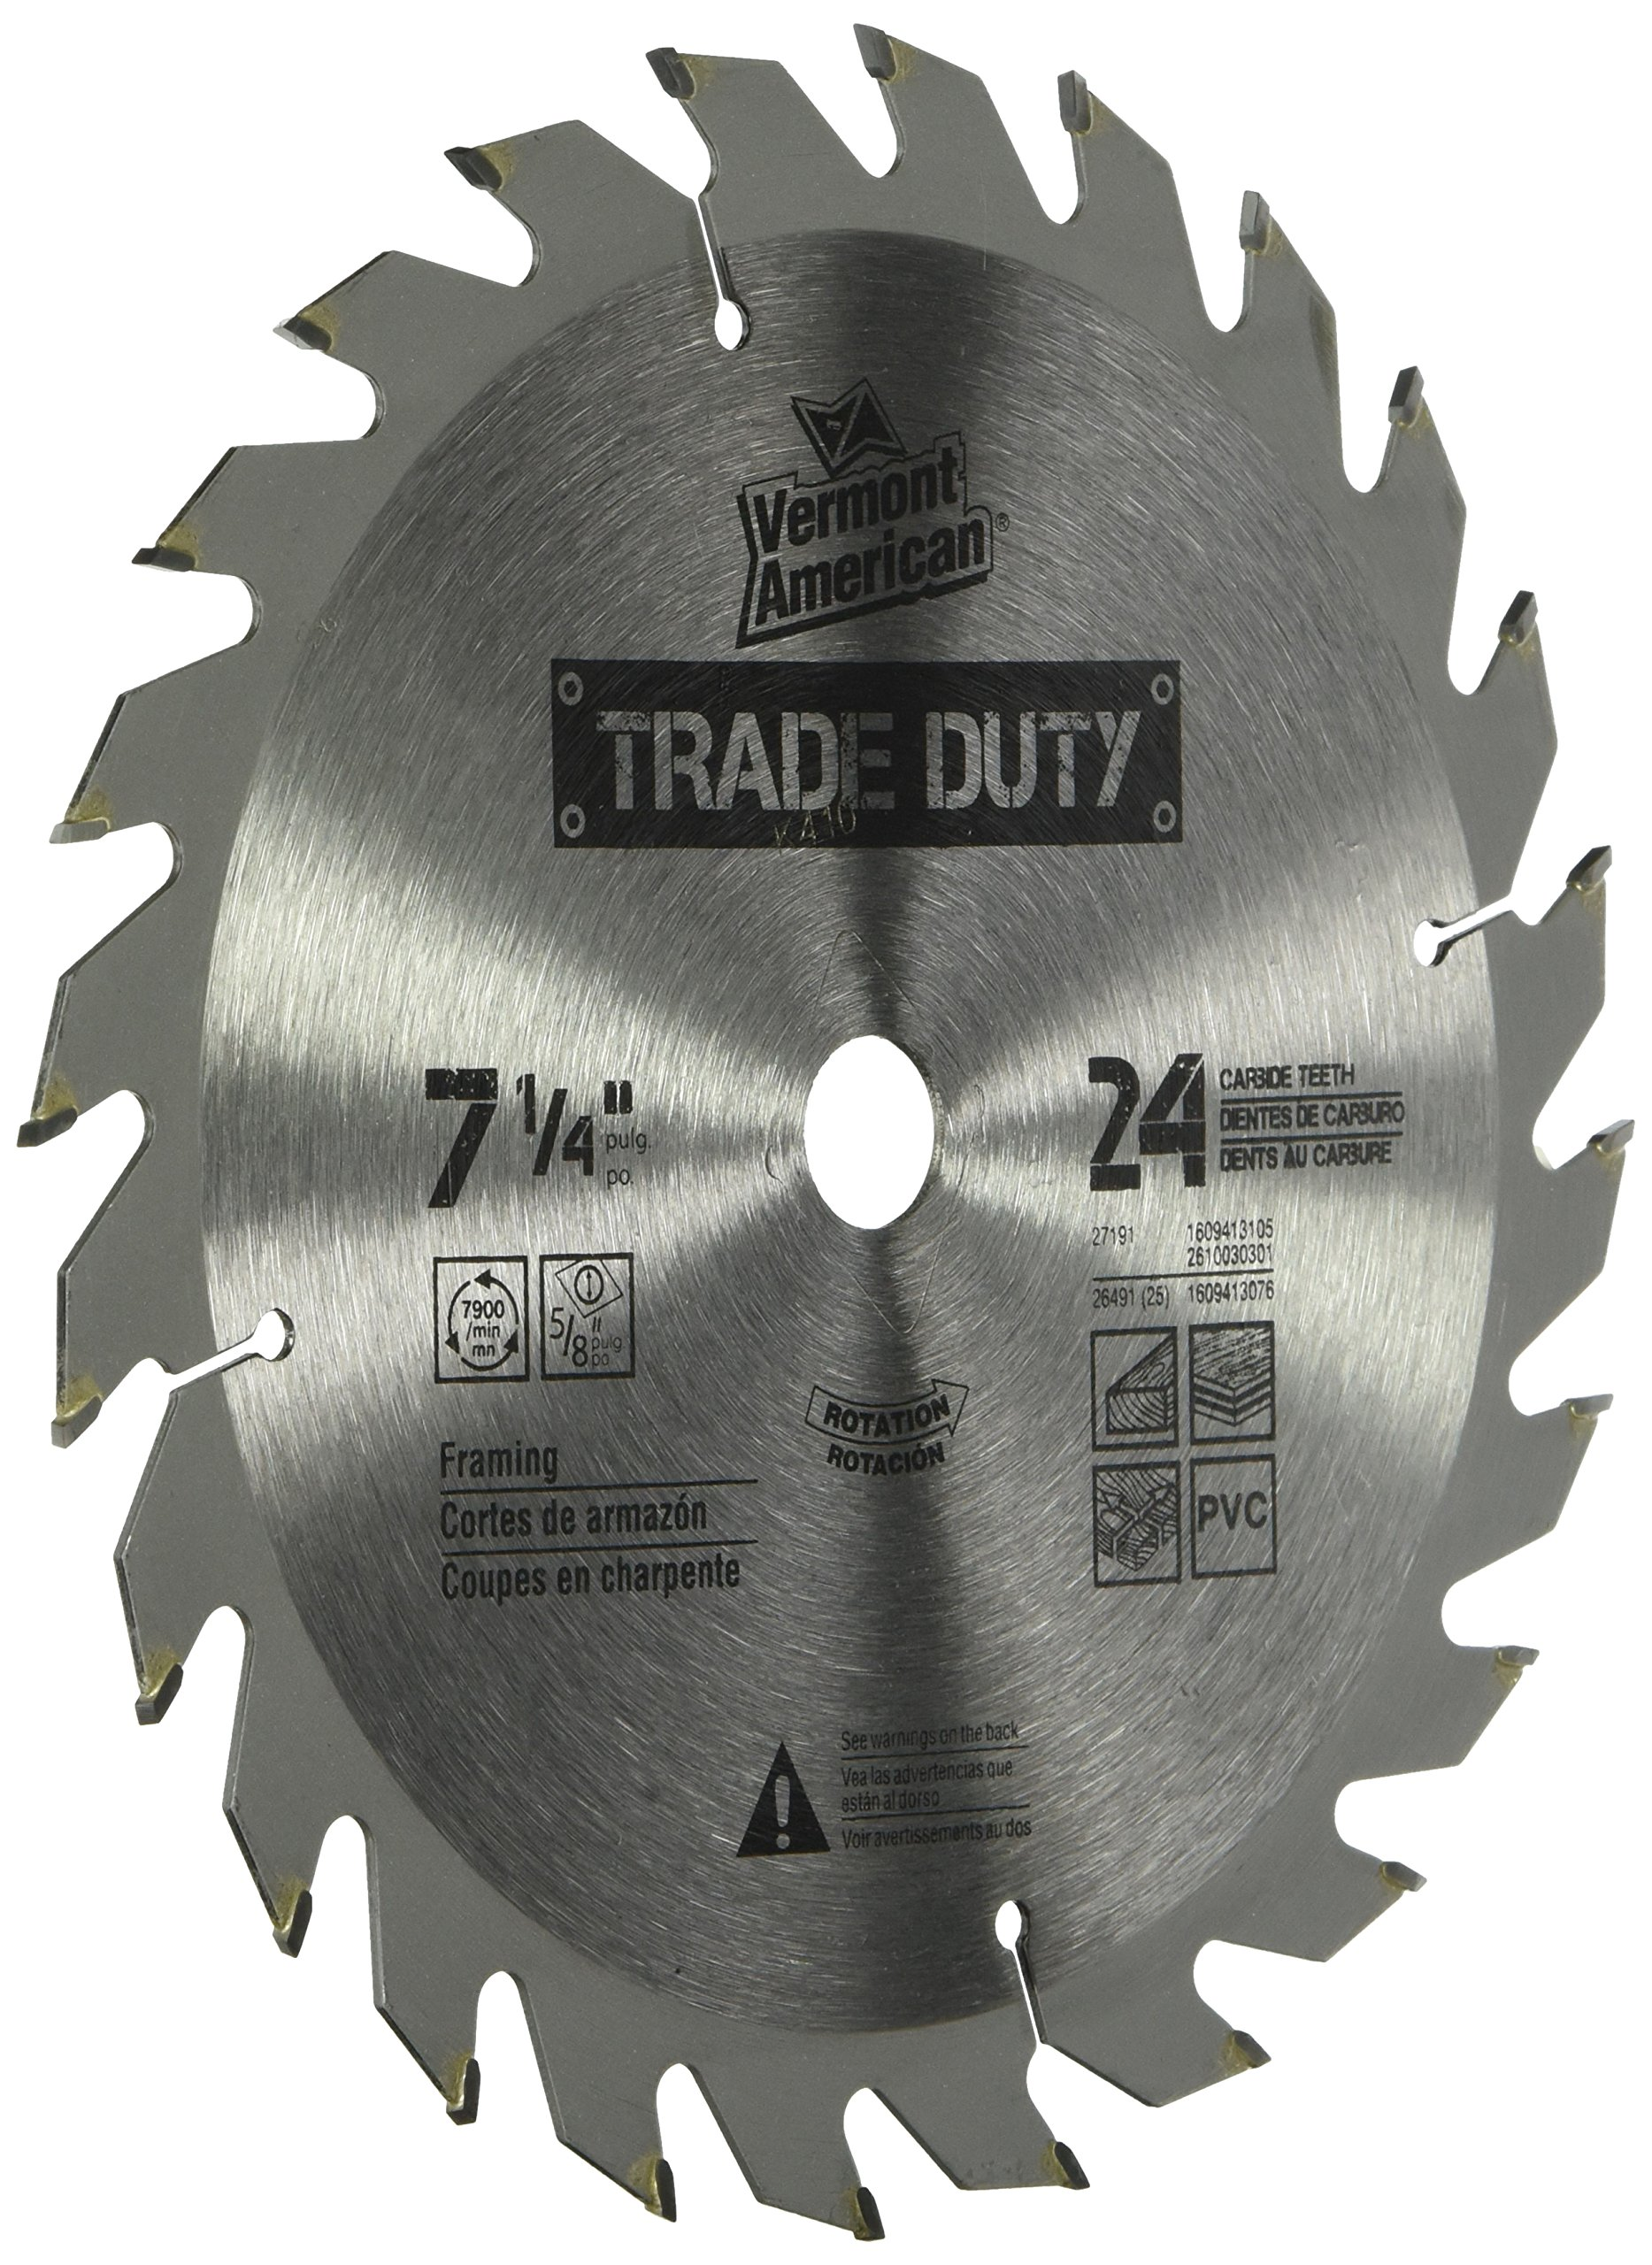 Vermont American 26491 5/8-Inch Arbor 7-1/4-Inch 24 Tooth Carbide Trade Duty Circular Saw Blade by Vermont American